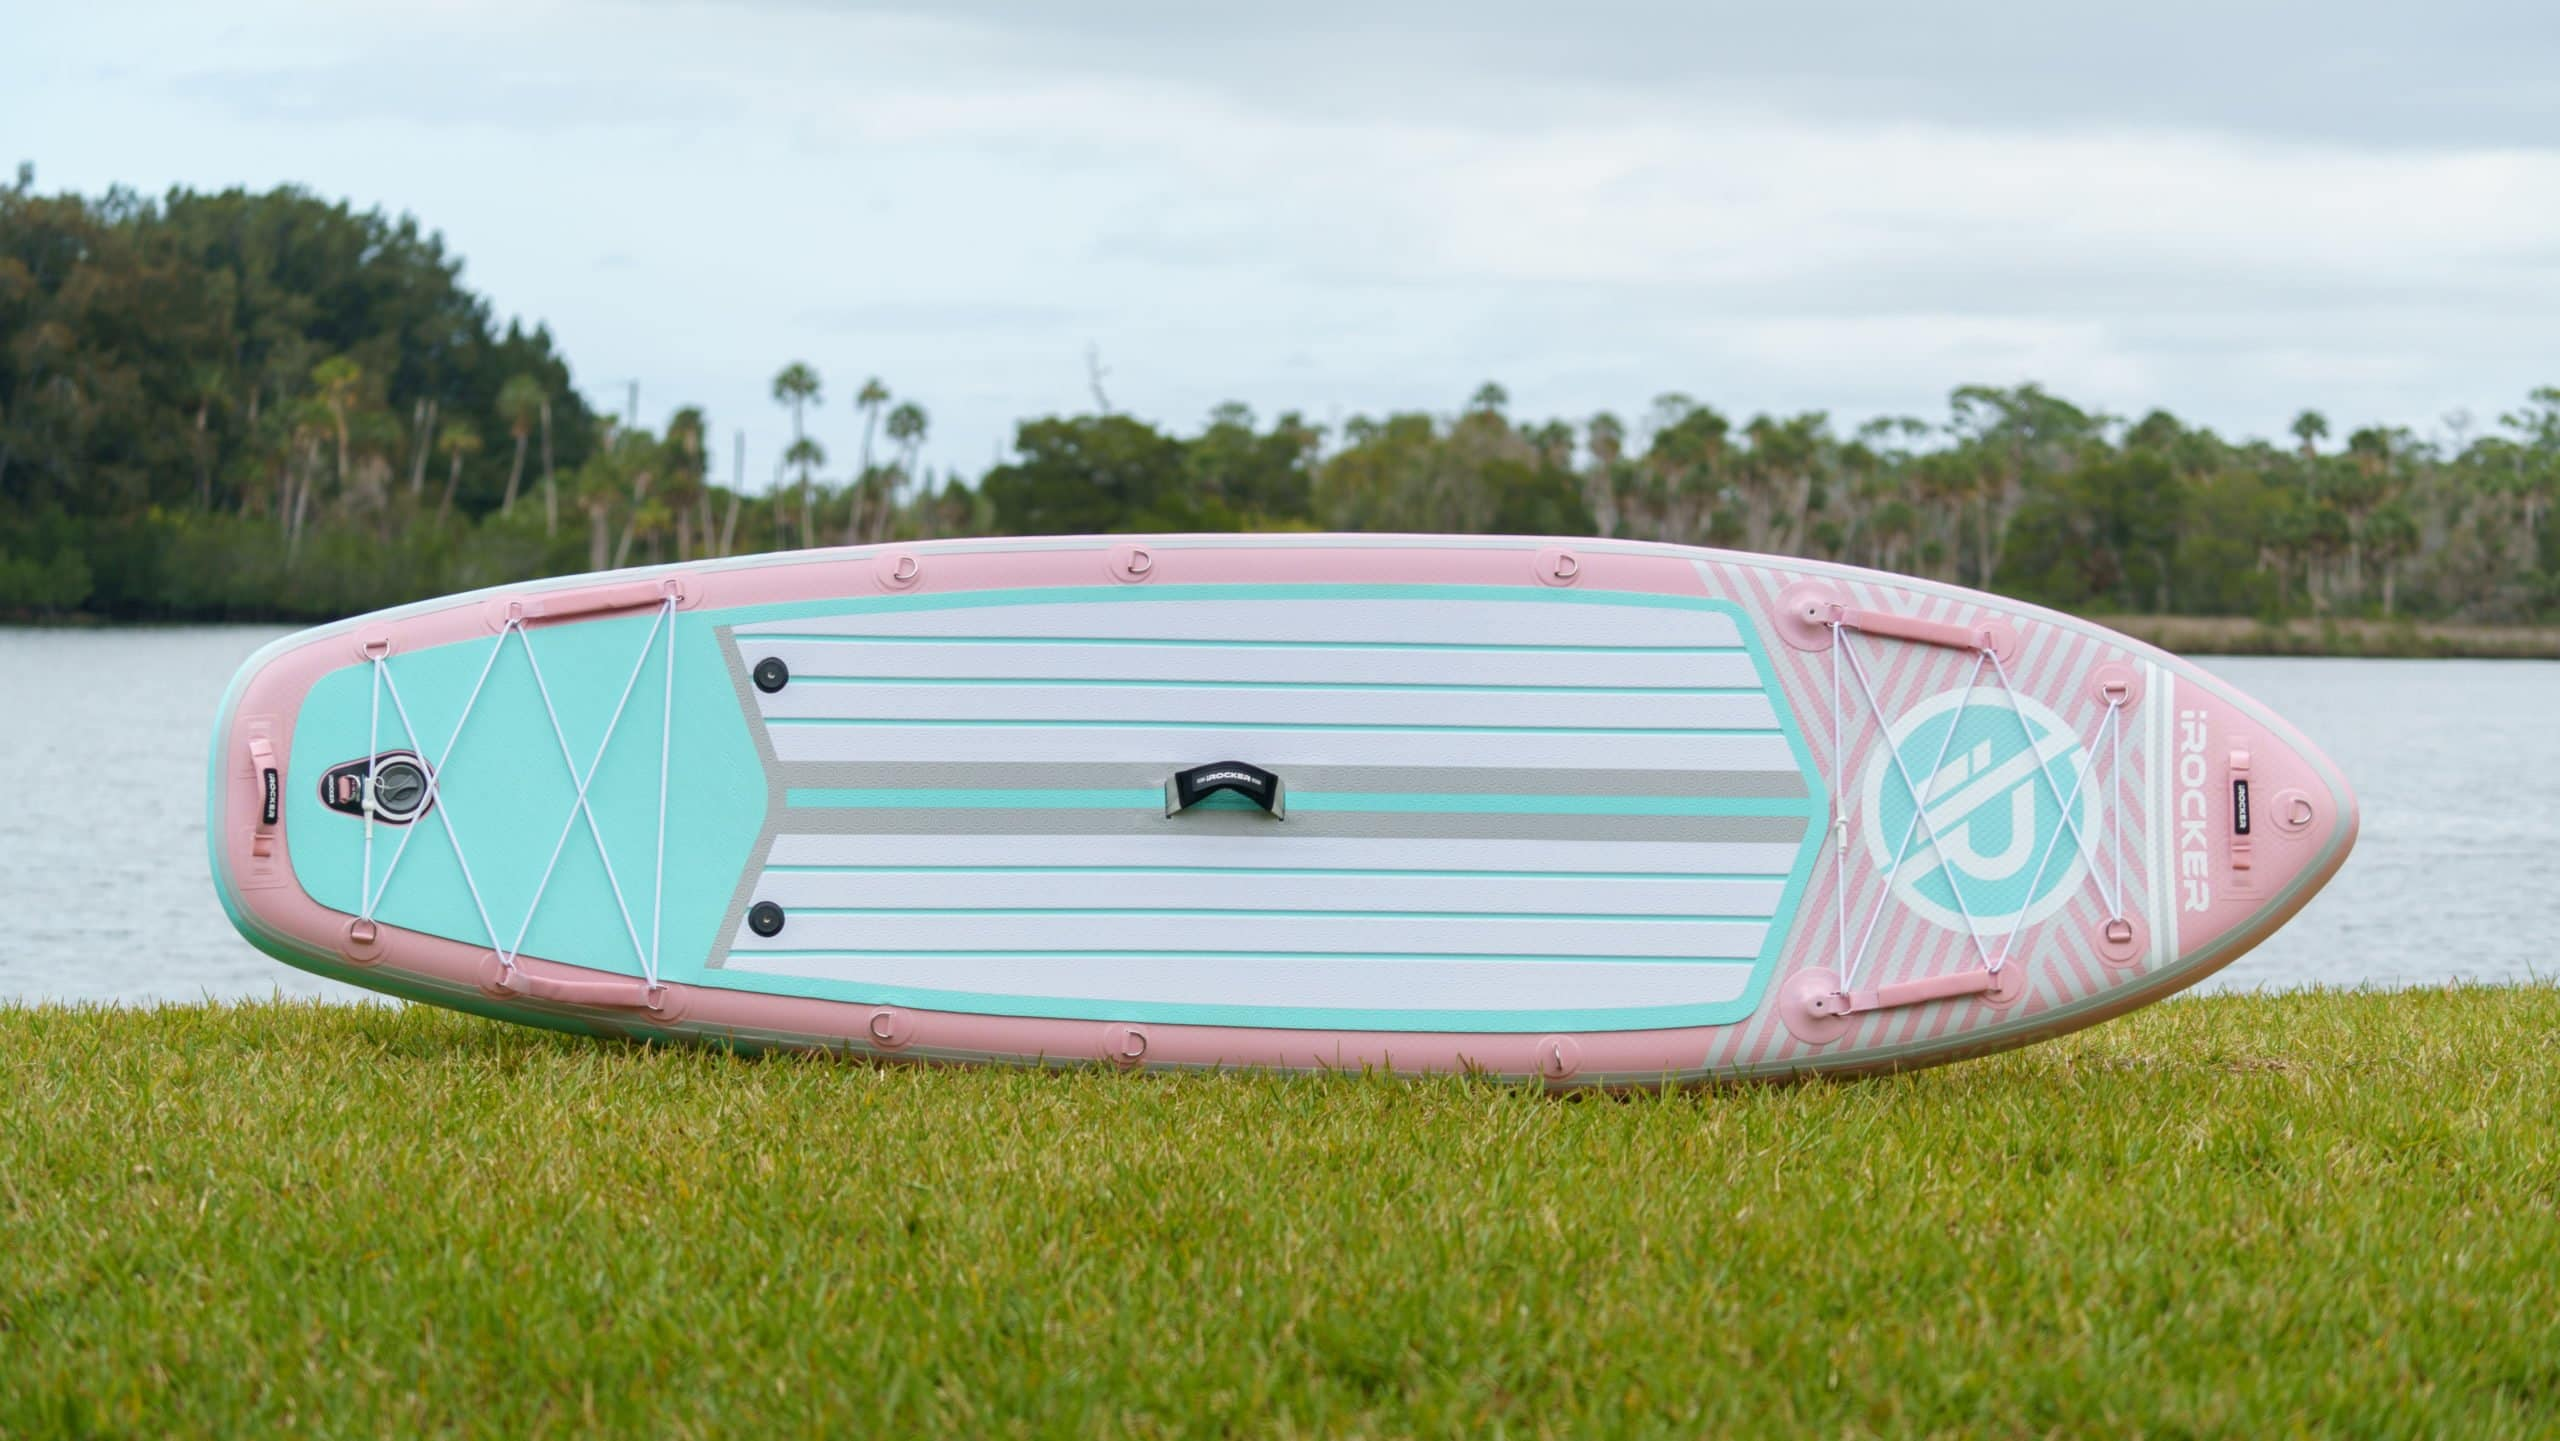 Overview of the 2021 iROCKER paddle board in pink.